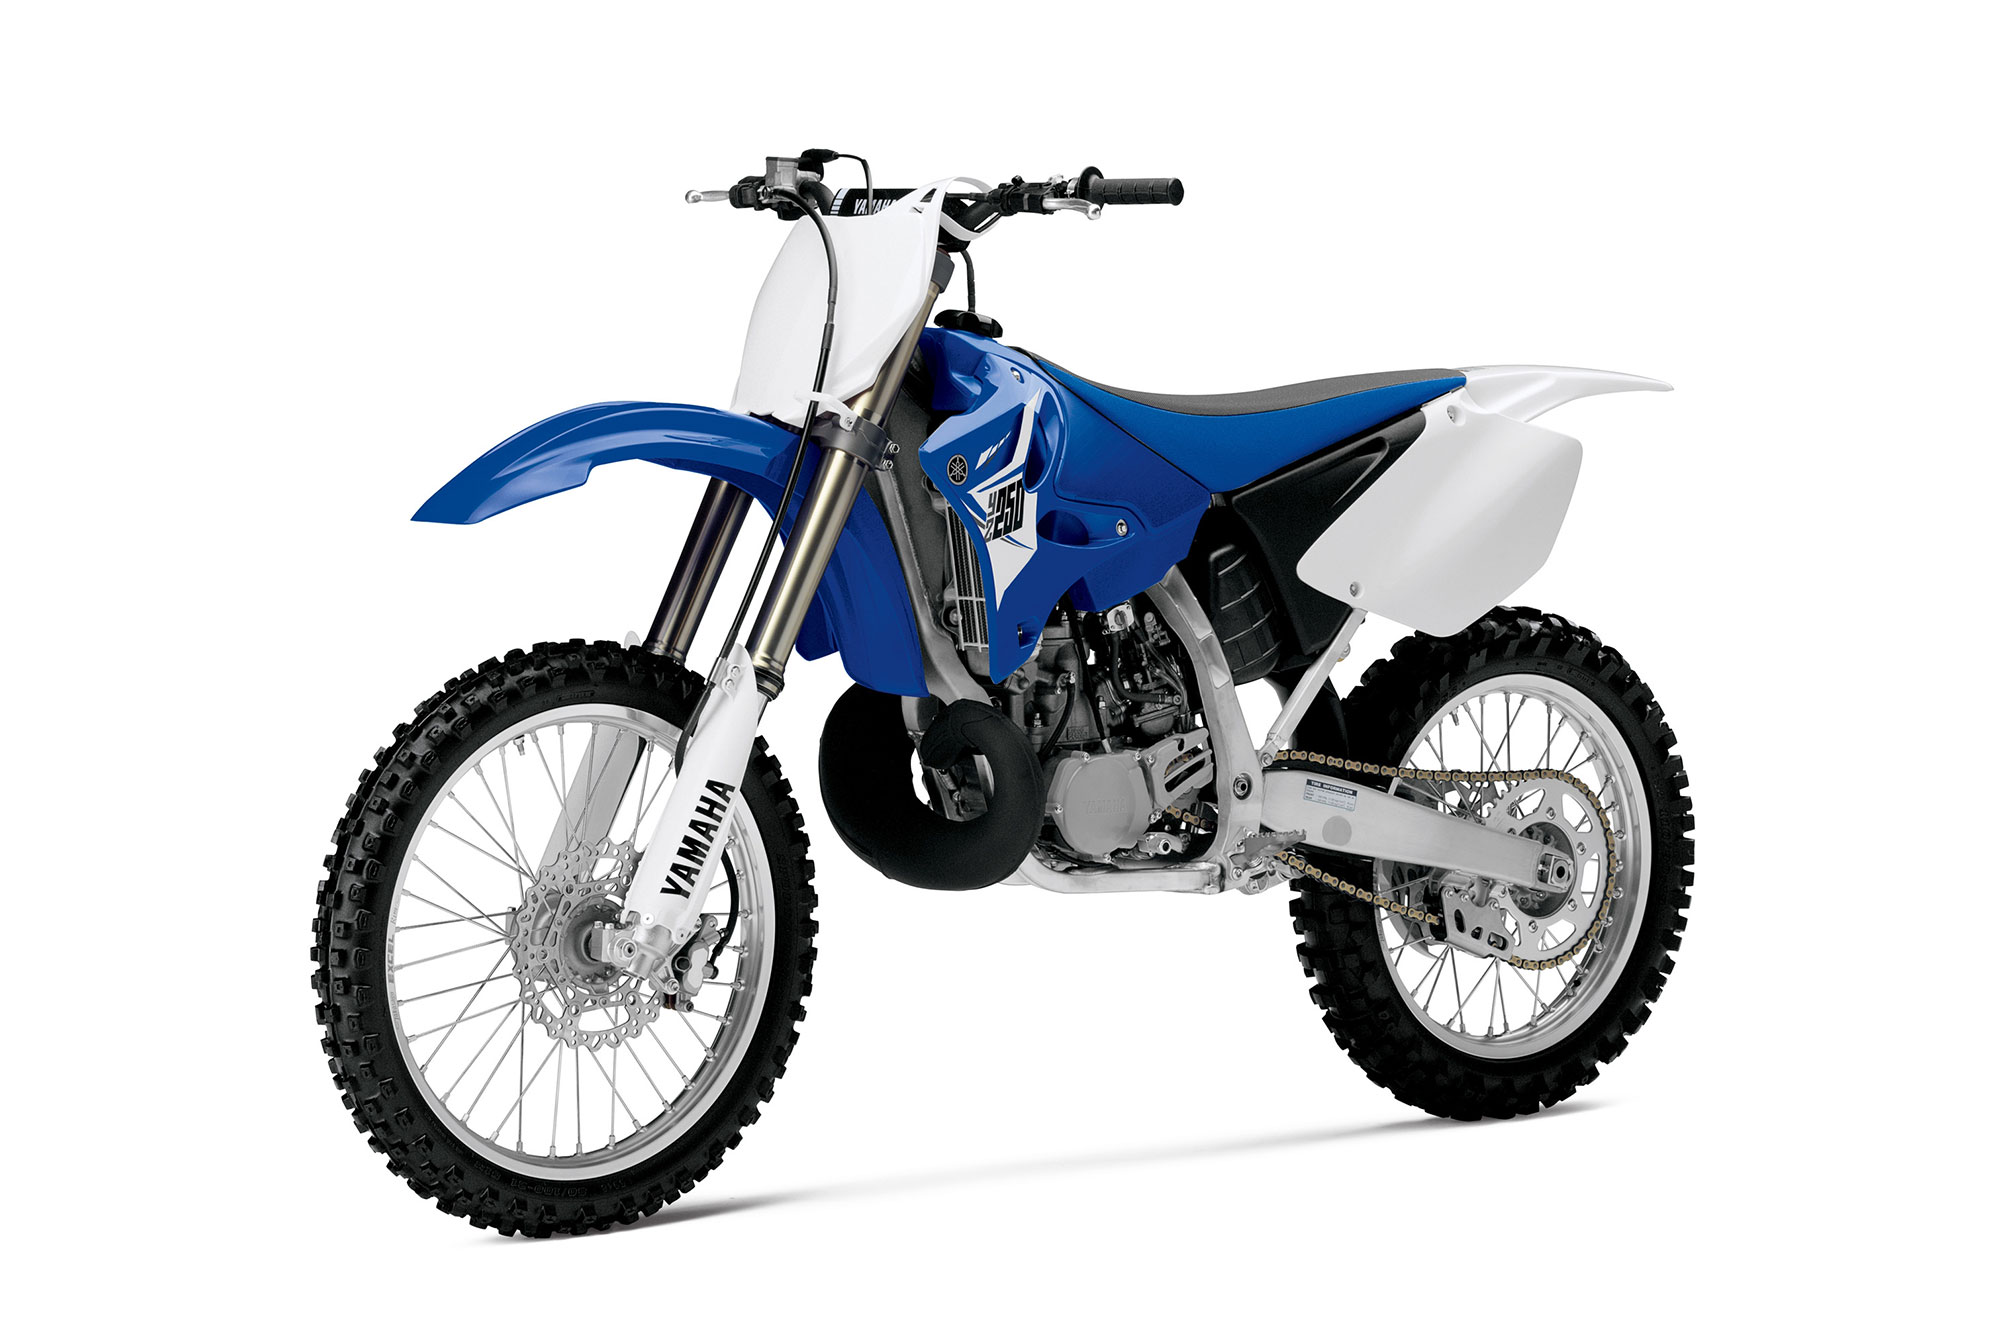 2014 Yamaha YZ250 2-Stroke Review